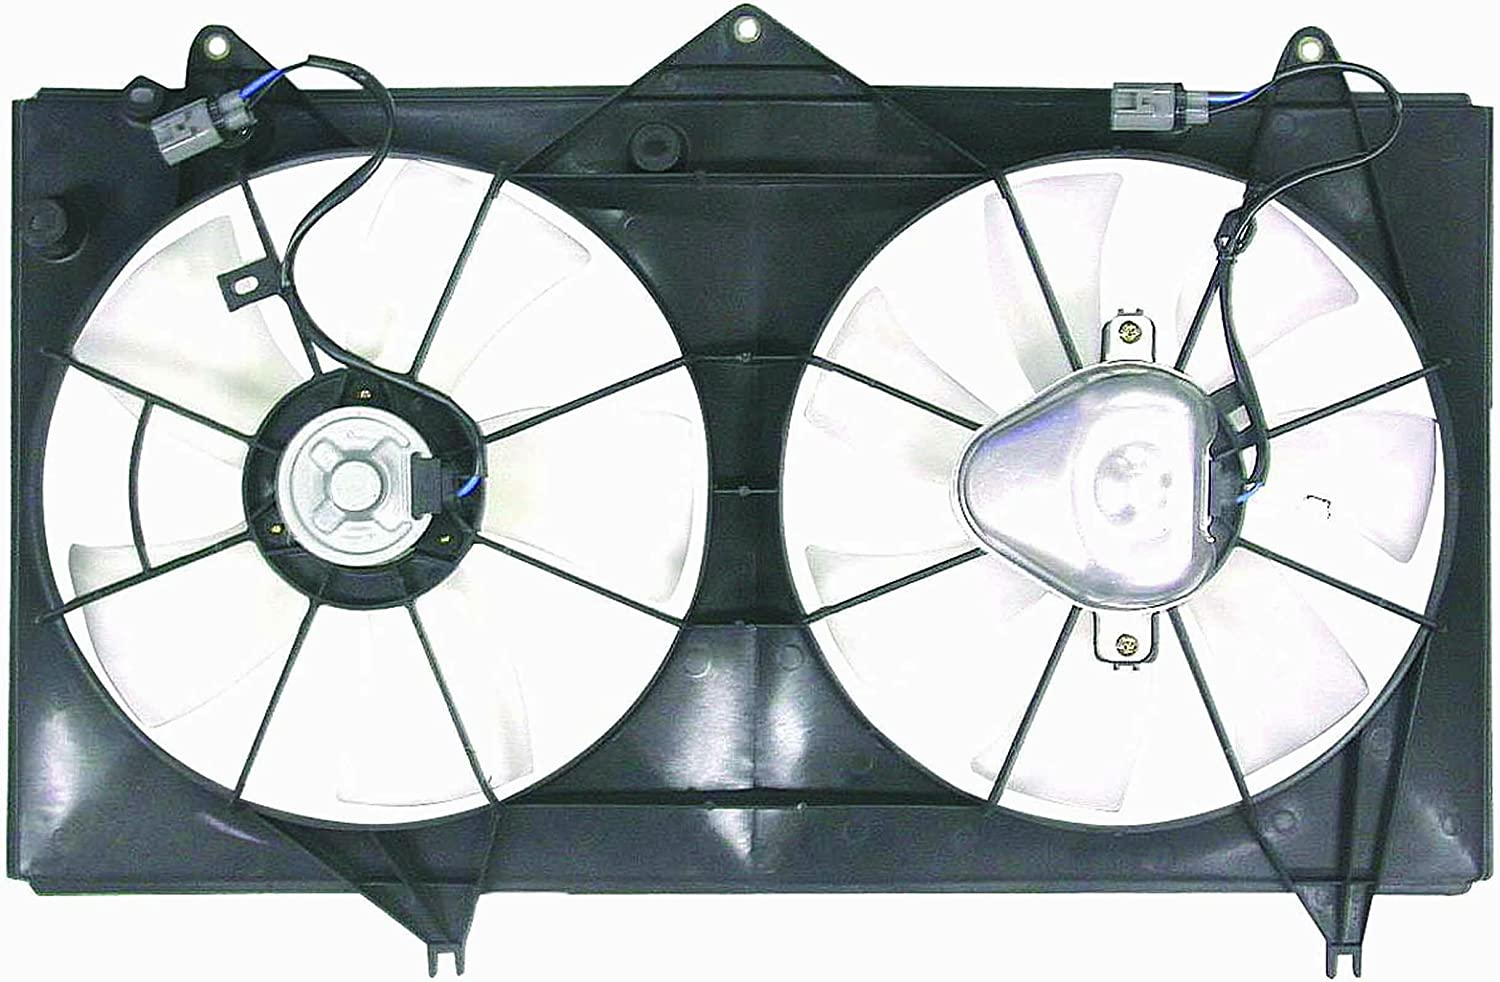 DEPO 312-55007-000 Replacement Engine Cooling Fan Assembly (This product is an aftermarket product. It is not created or sold by the OE car company)